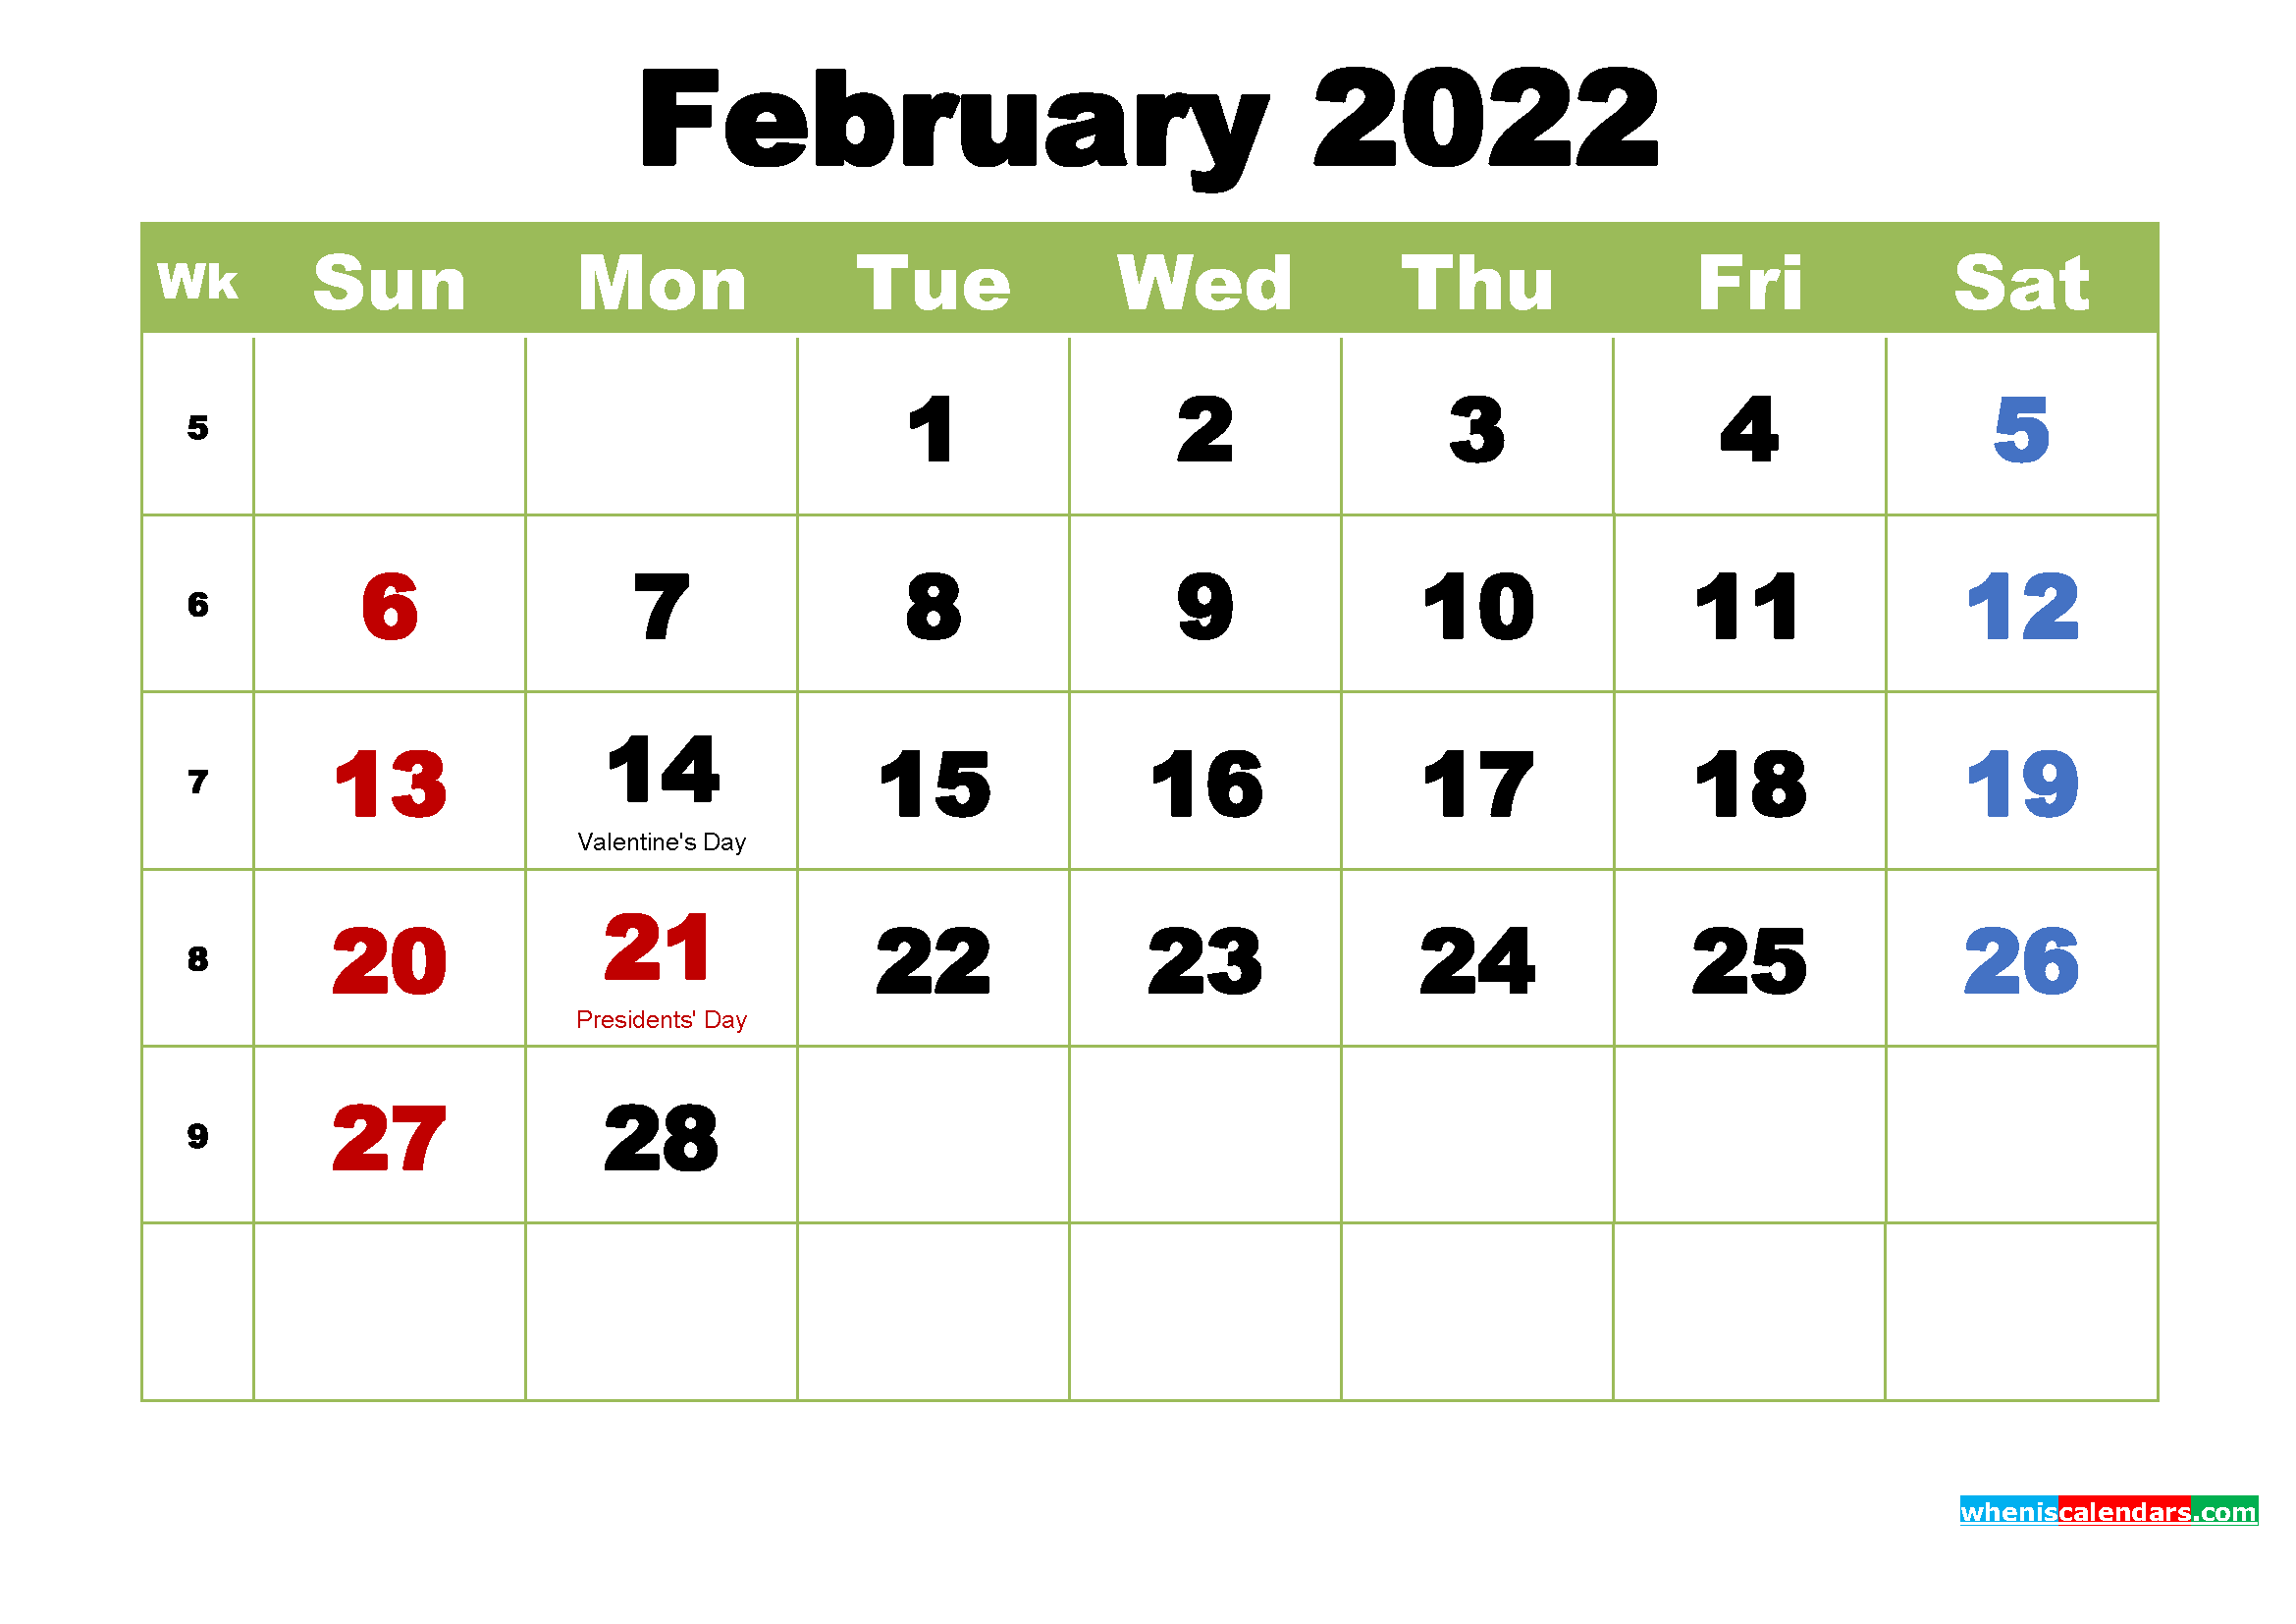 We are proud to offer a variety of seminars and programs that are pertinent to the varied work we do. Free February 2022 Printable Calendar with Holidays